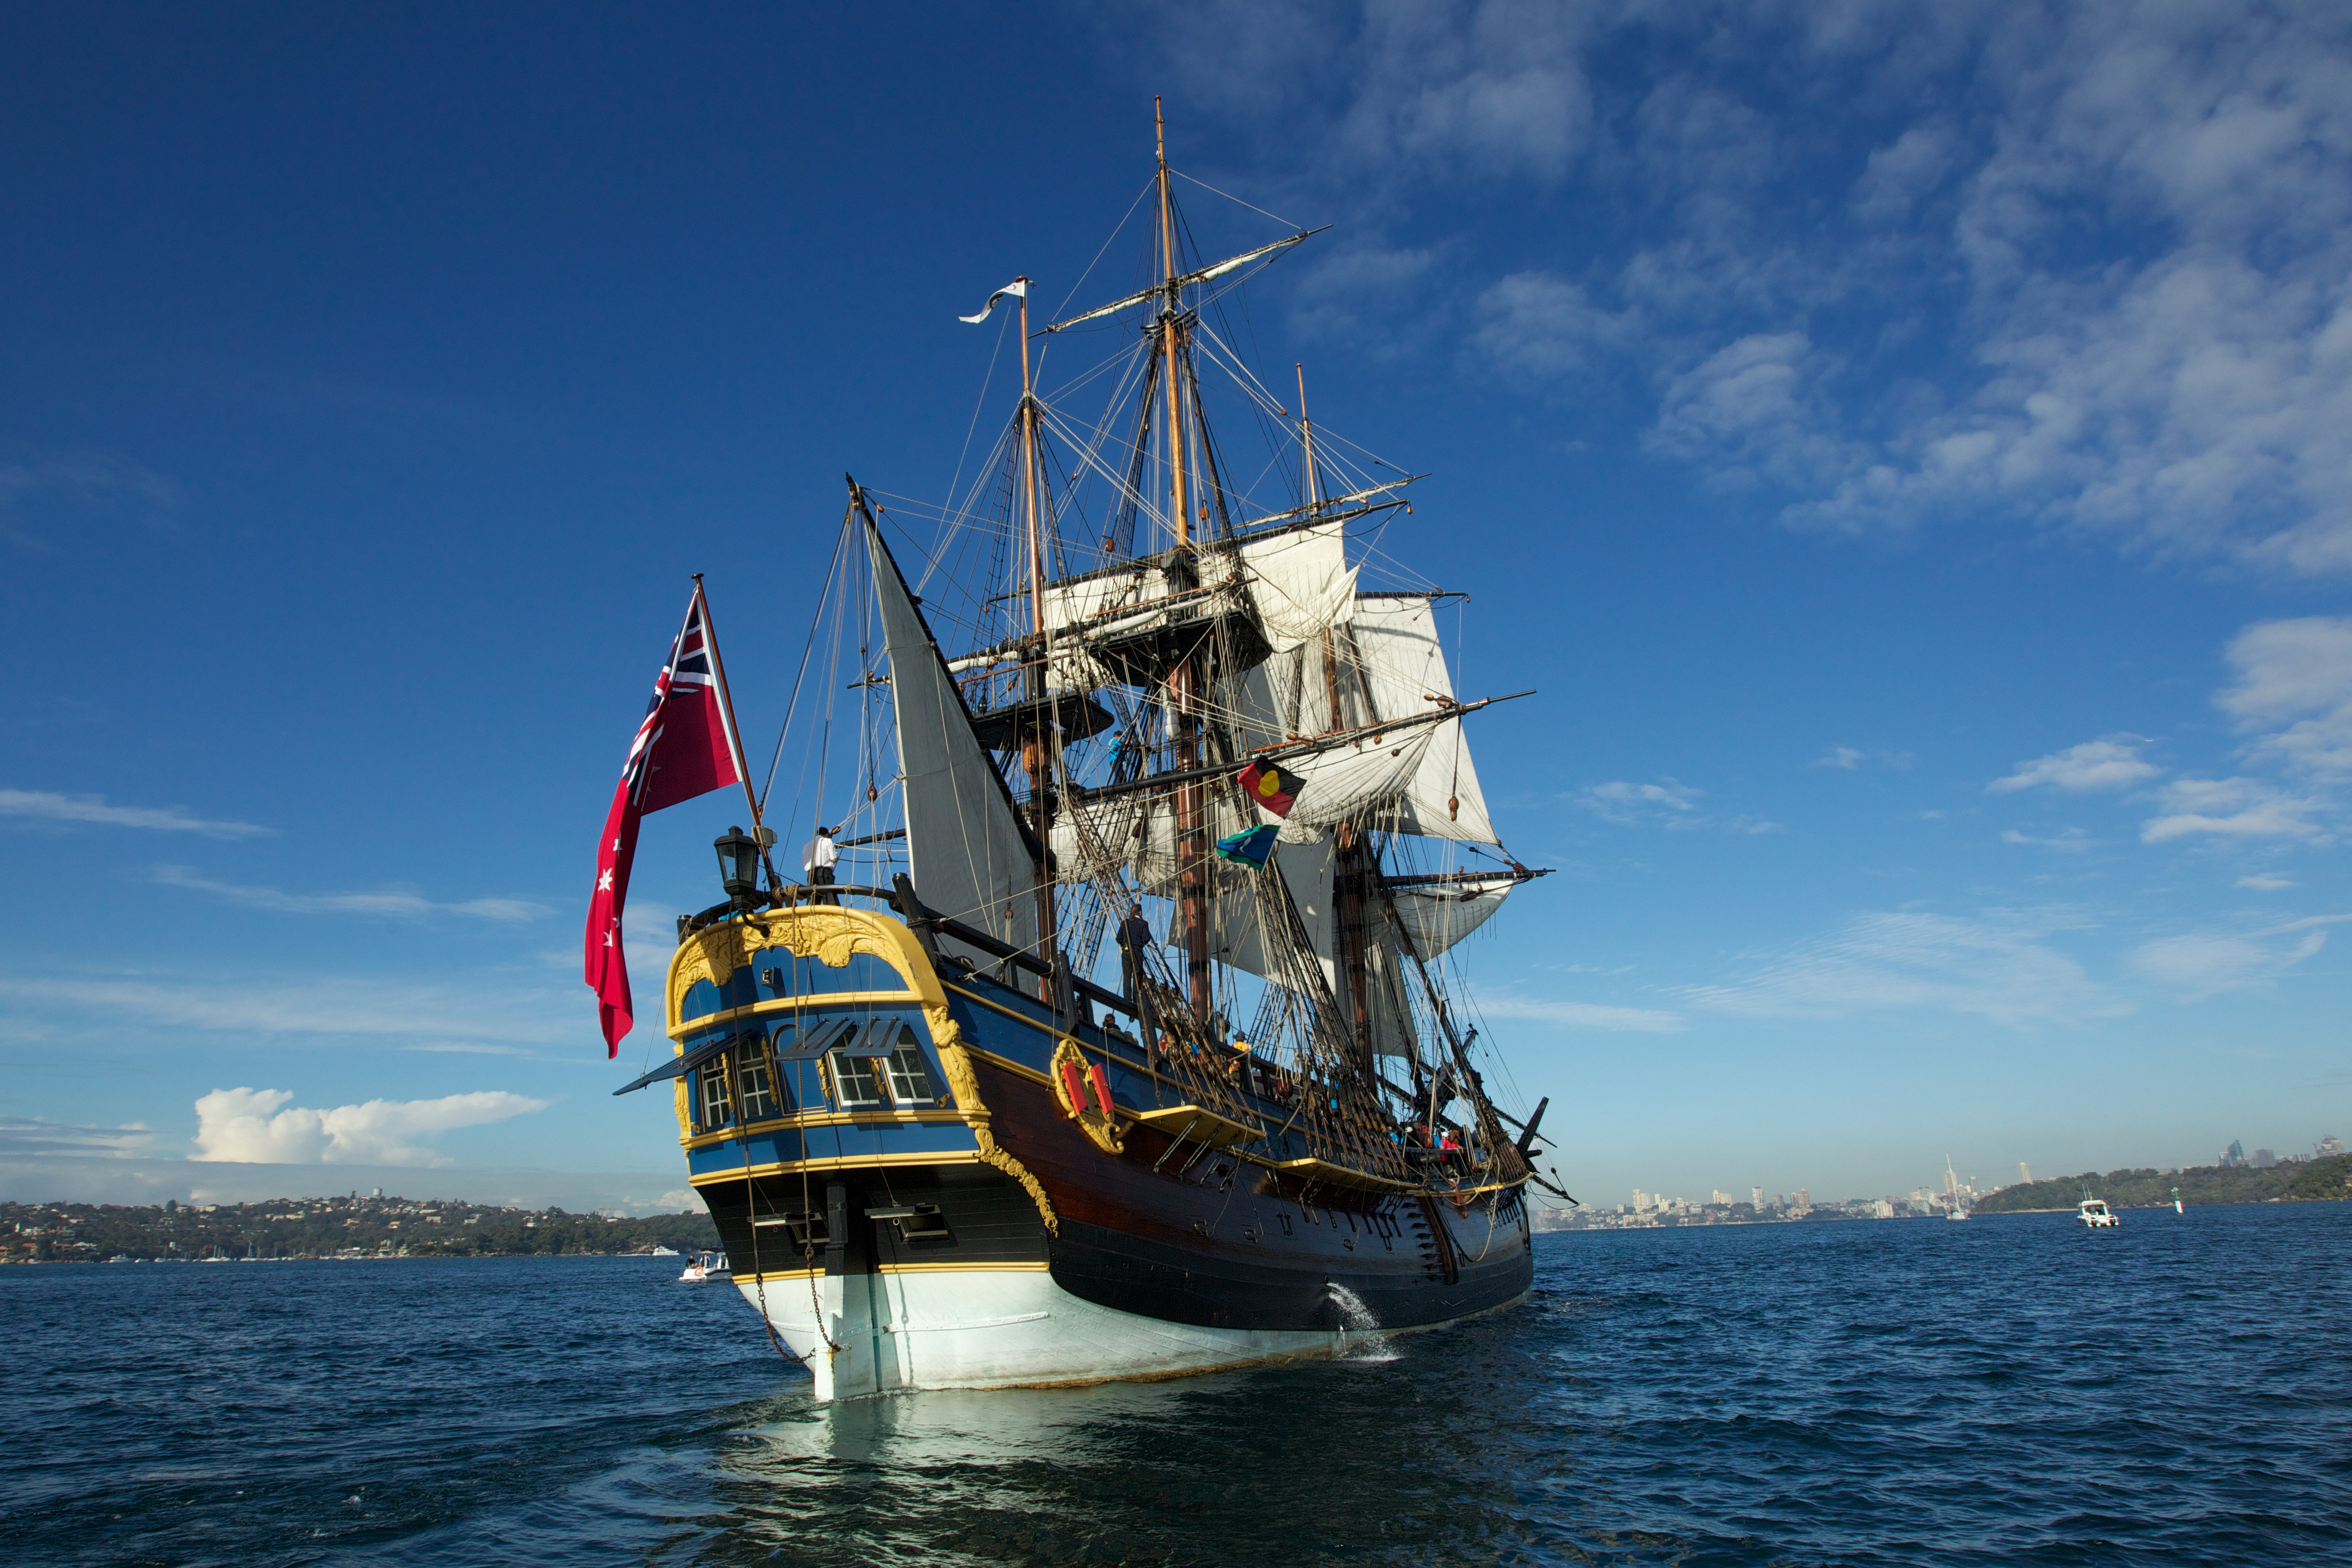 The replica of Captain Cook's ship HMS Endeavour arrives in Sydney Harbor on May 23, 2012, in Sydney